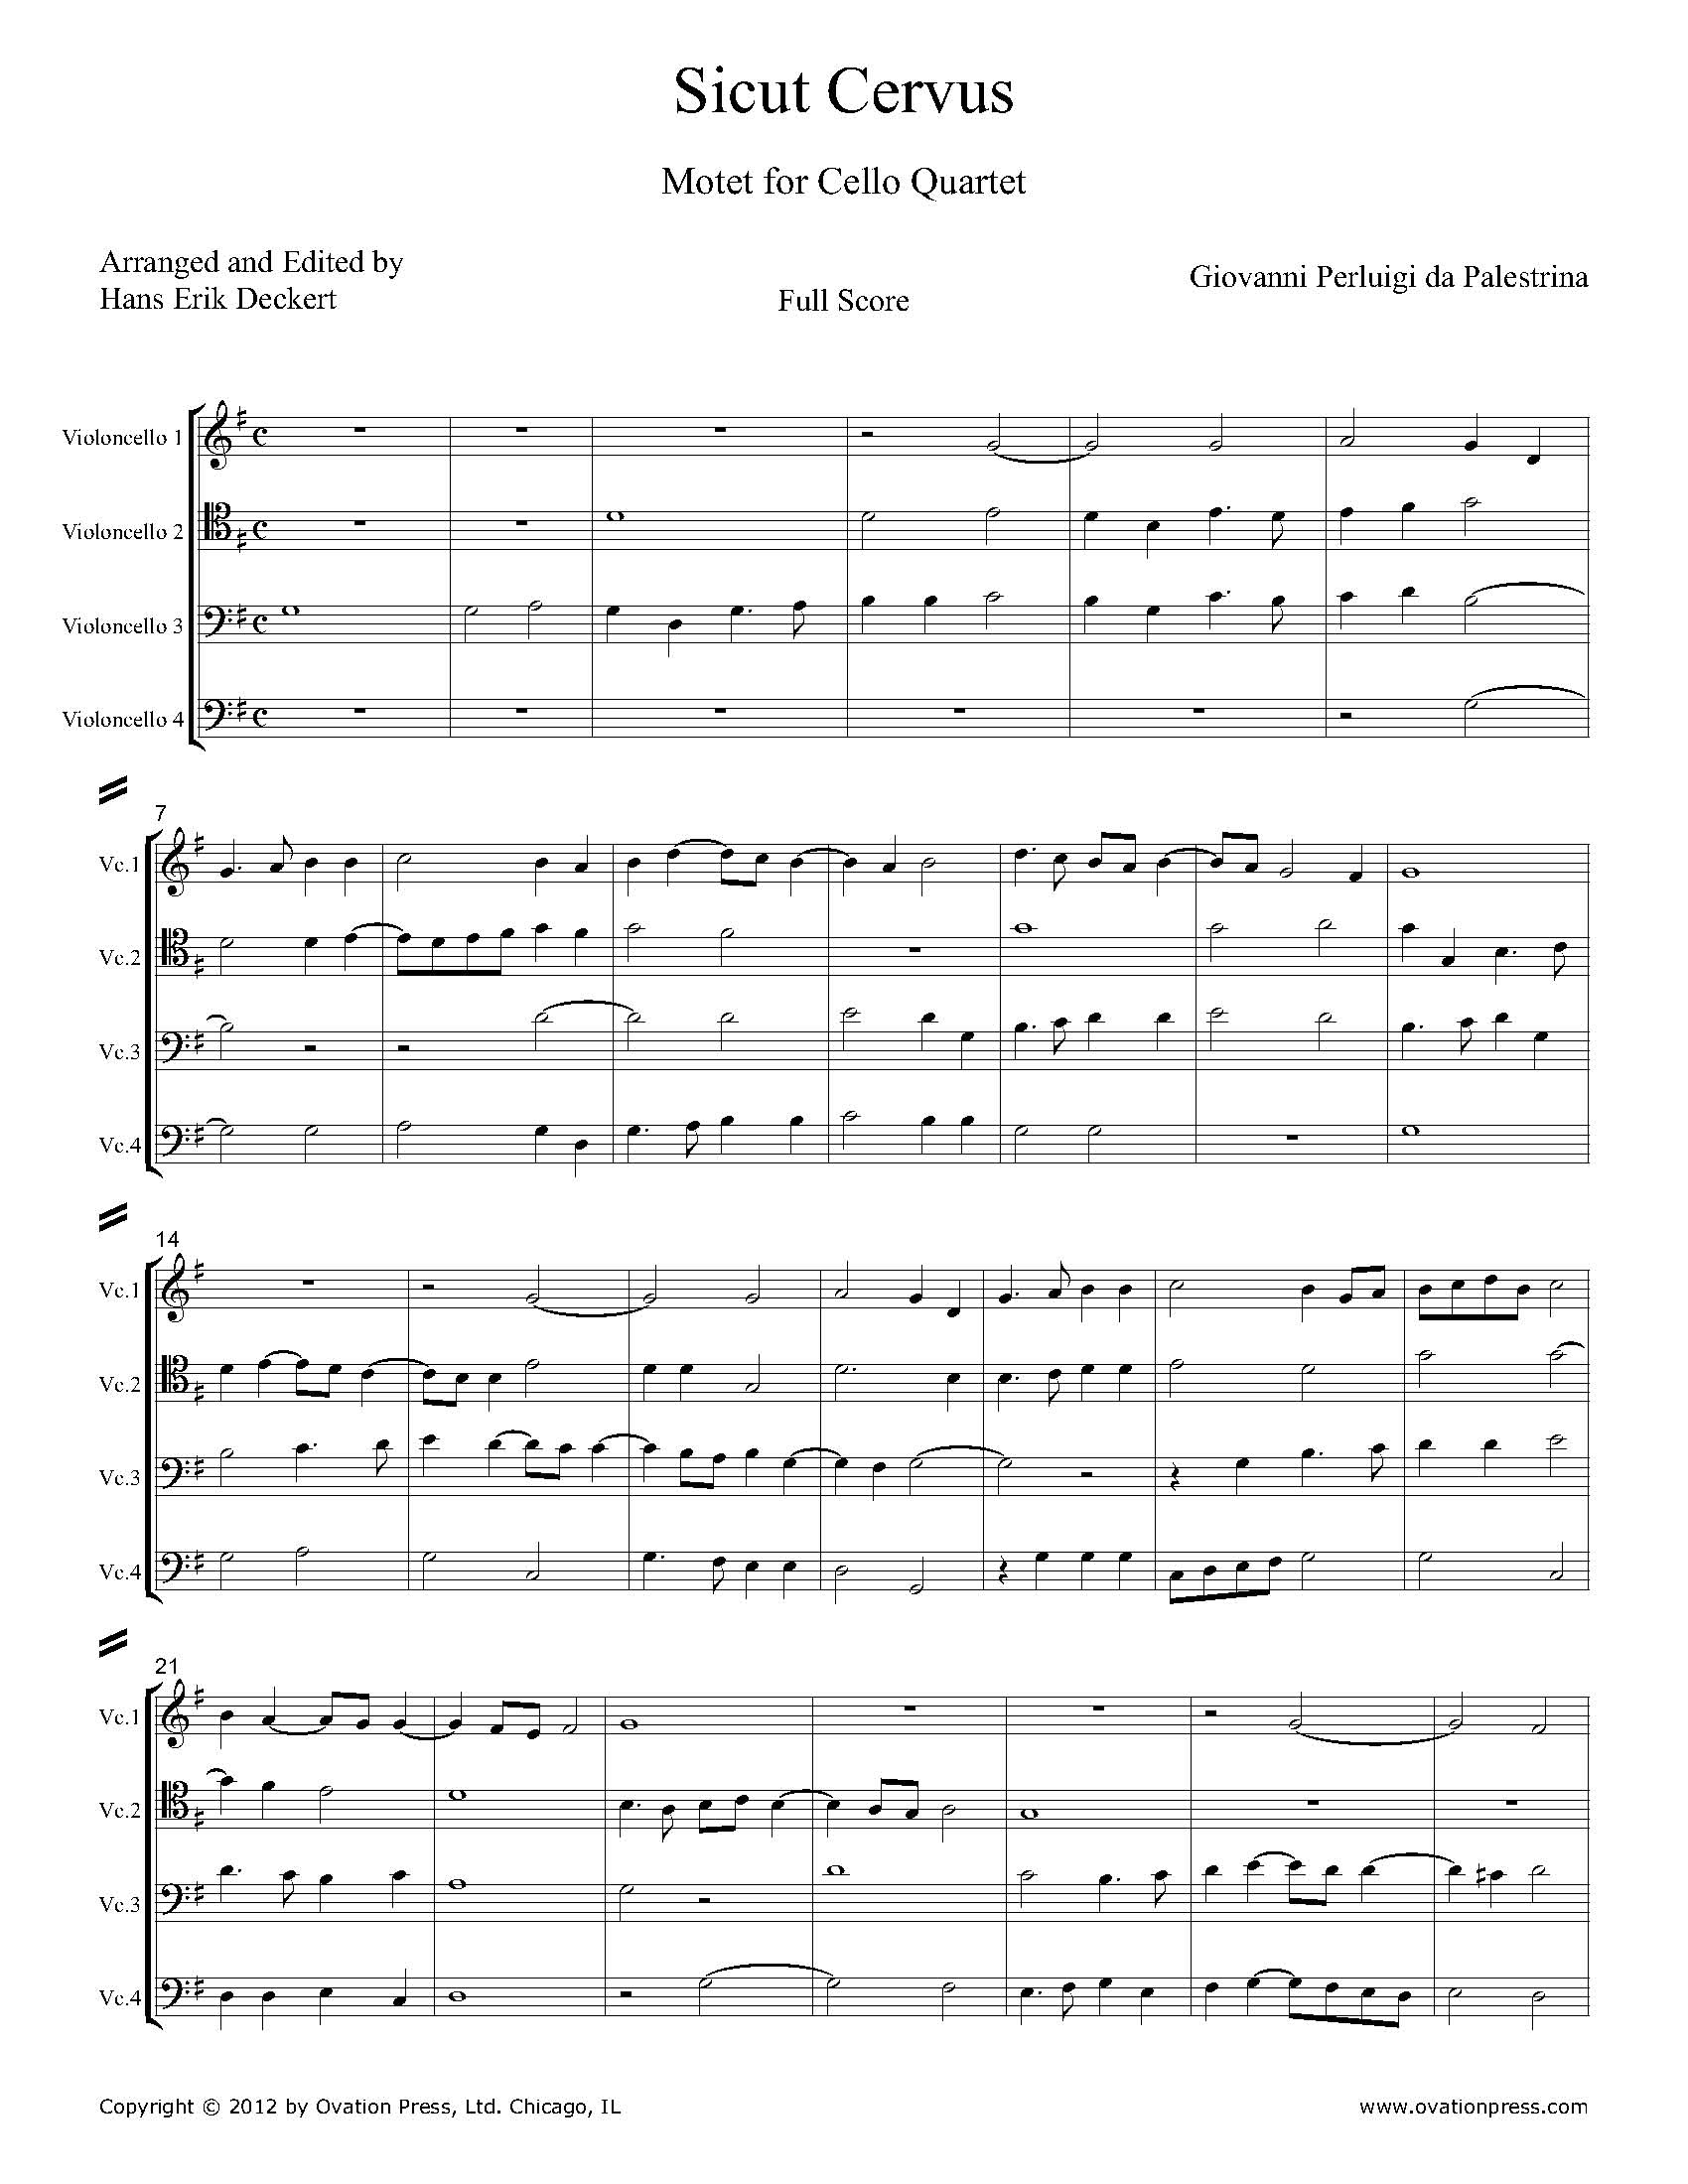 Palestrina Sicut Cervus Arranged for Cello Quartet